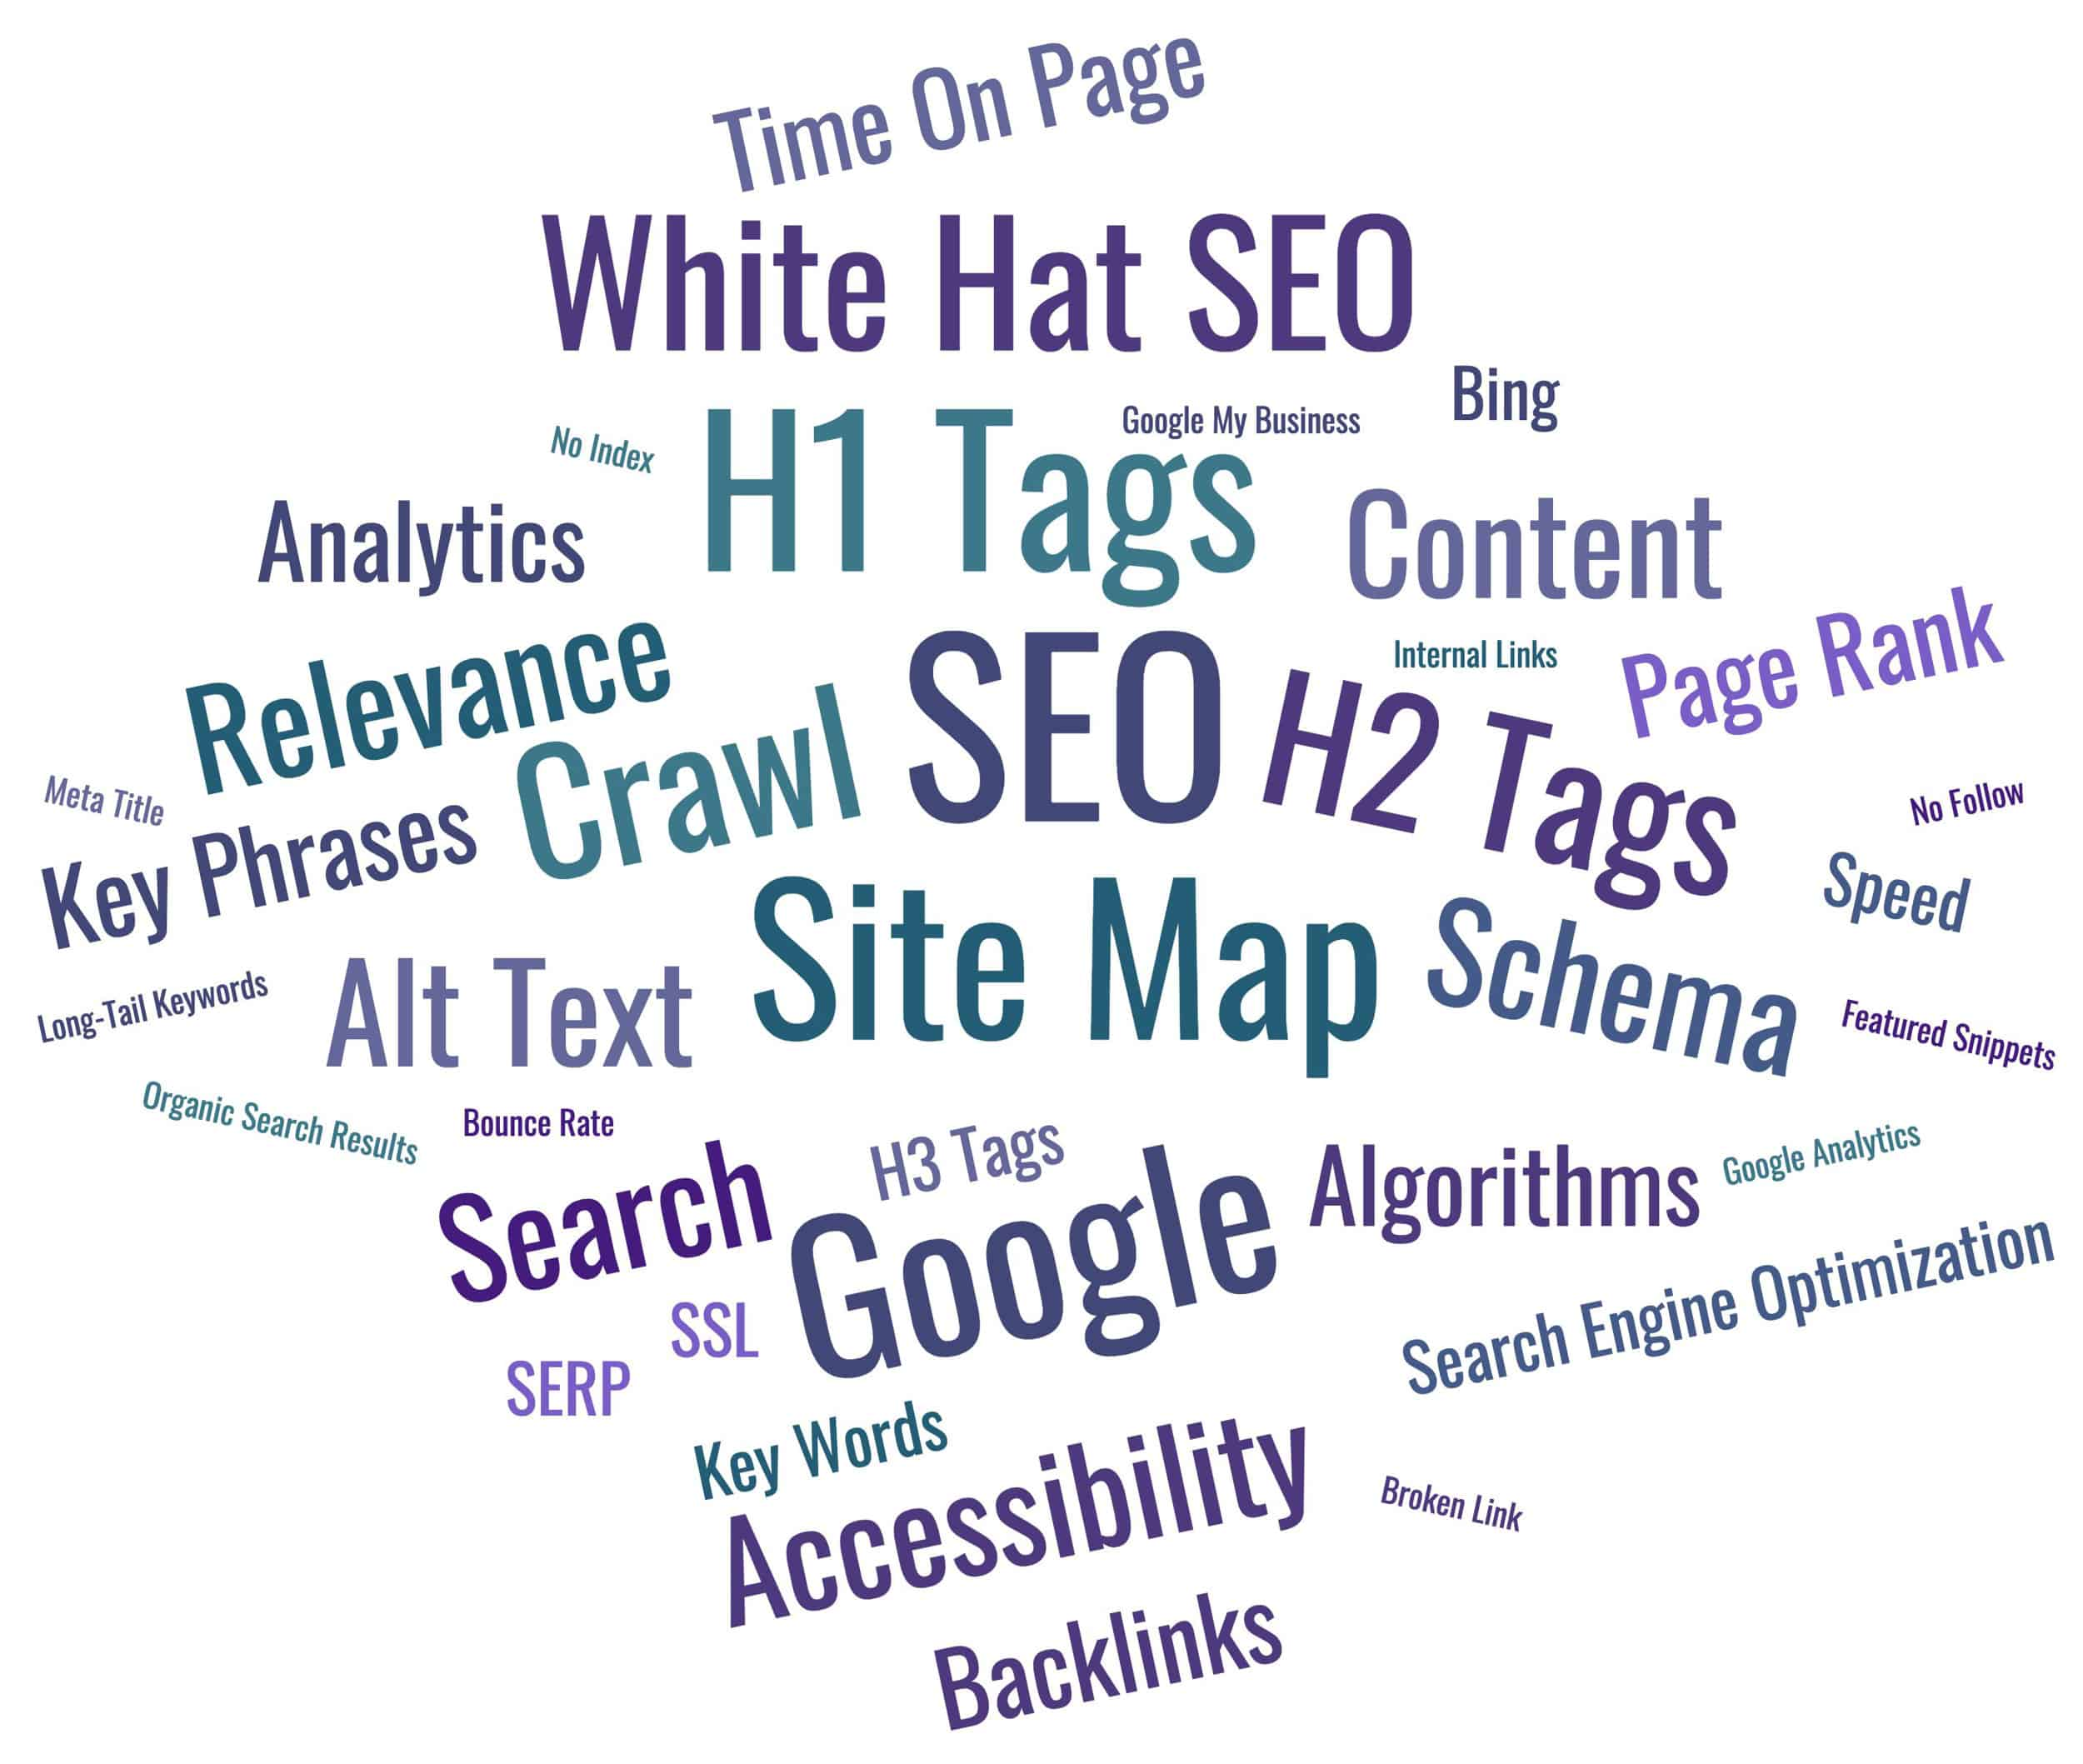 Words describing Website SEO – White Hat, Google, Search Engine Optimization, Page Rank, Site Map, Search, Key Words